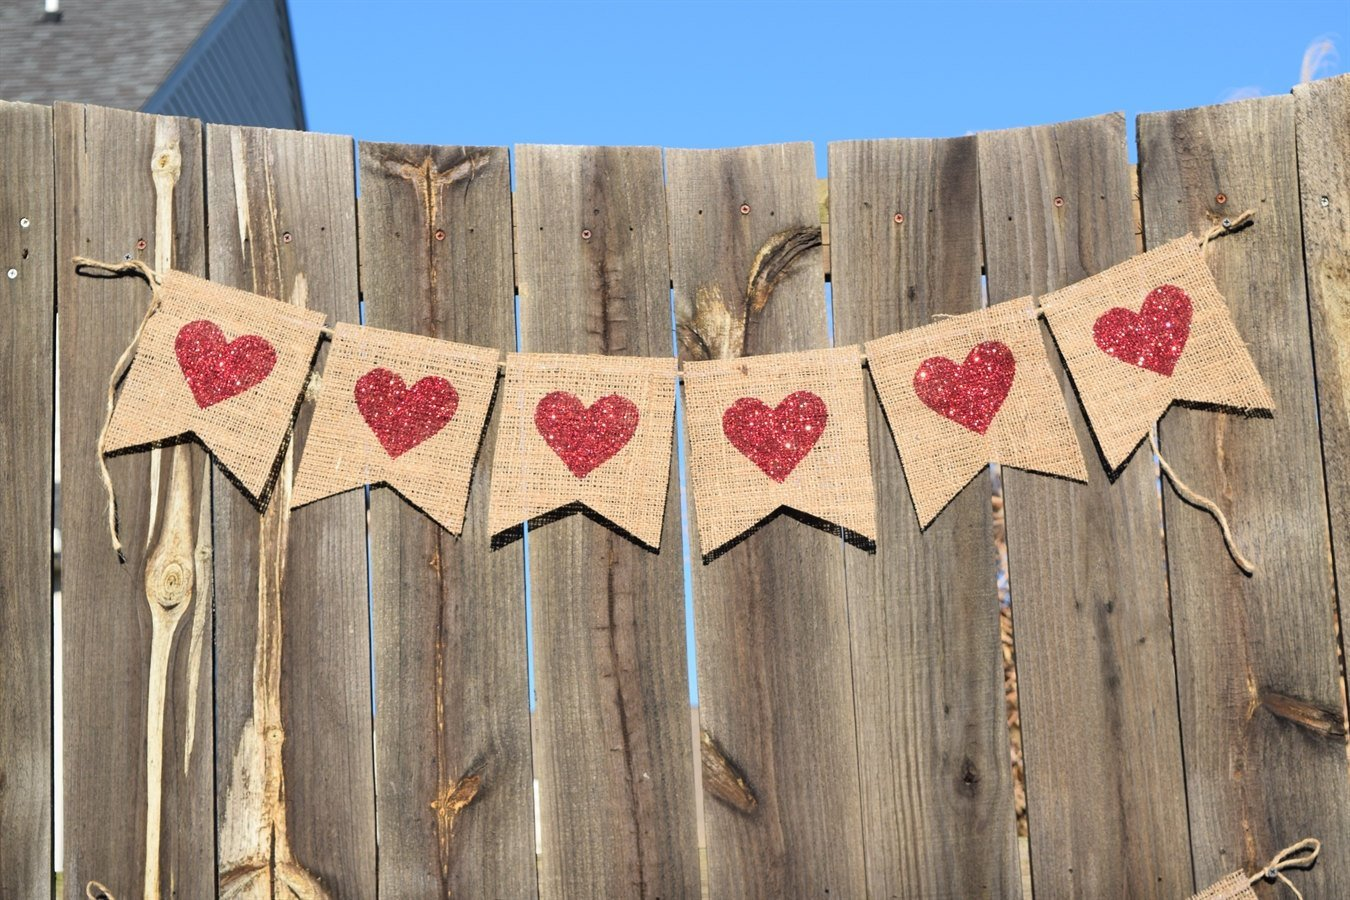 15 Sweet Handmade Valentine's Day Banner Designs To Spice Up The Atmosphere